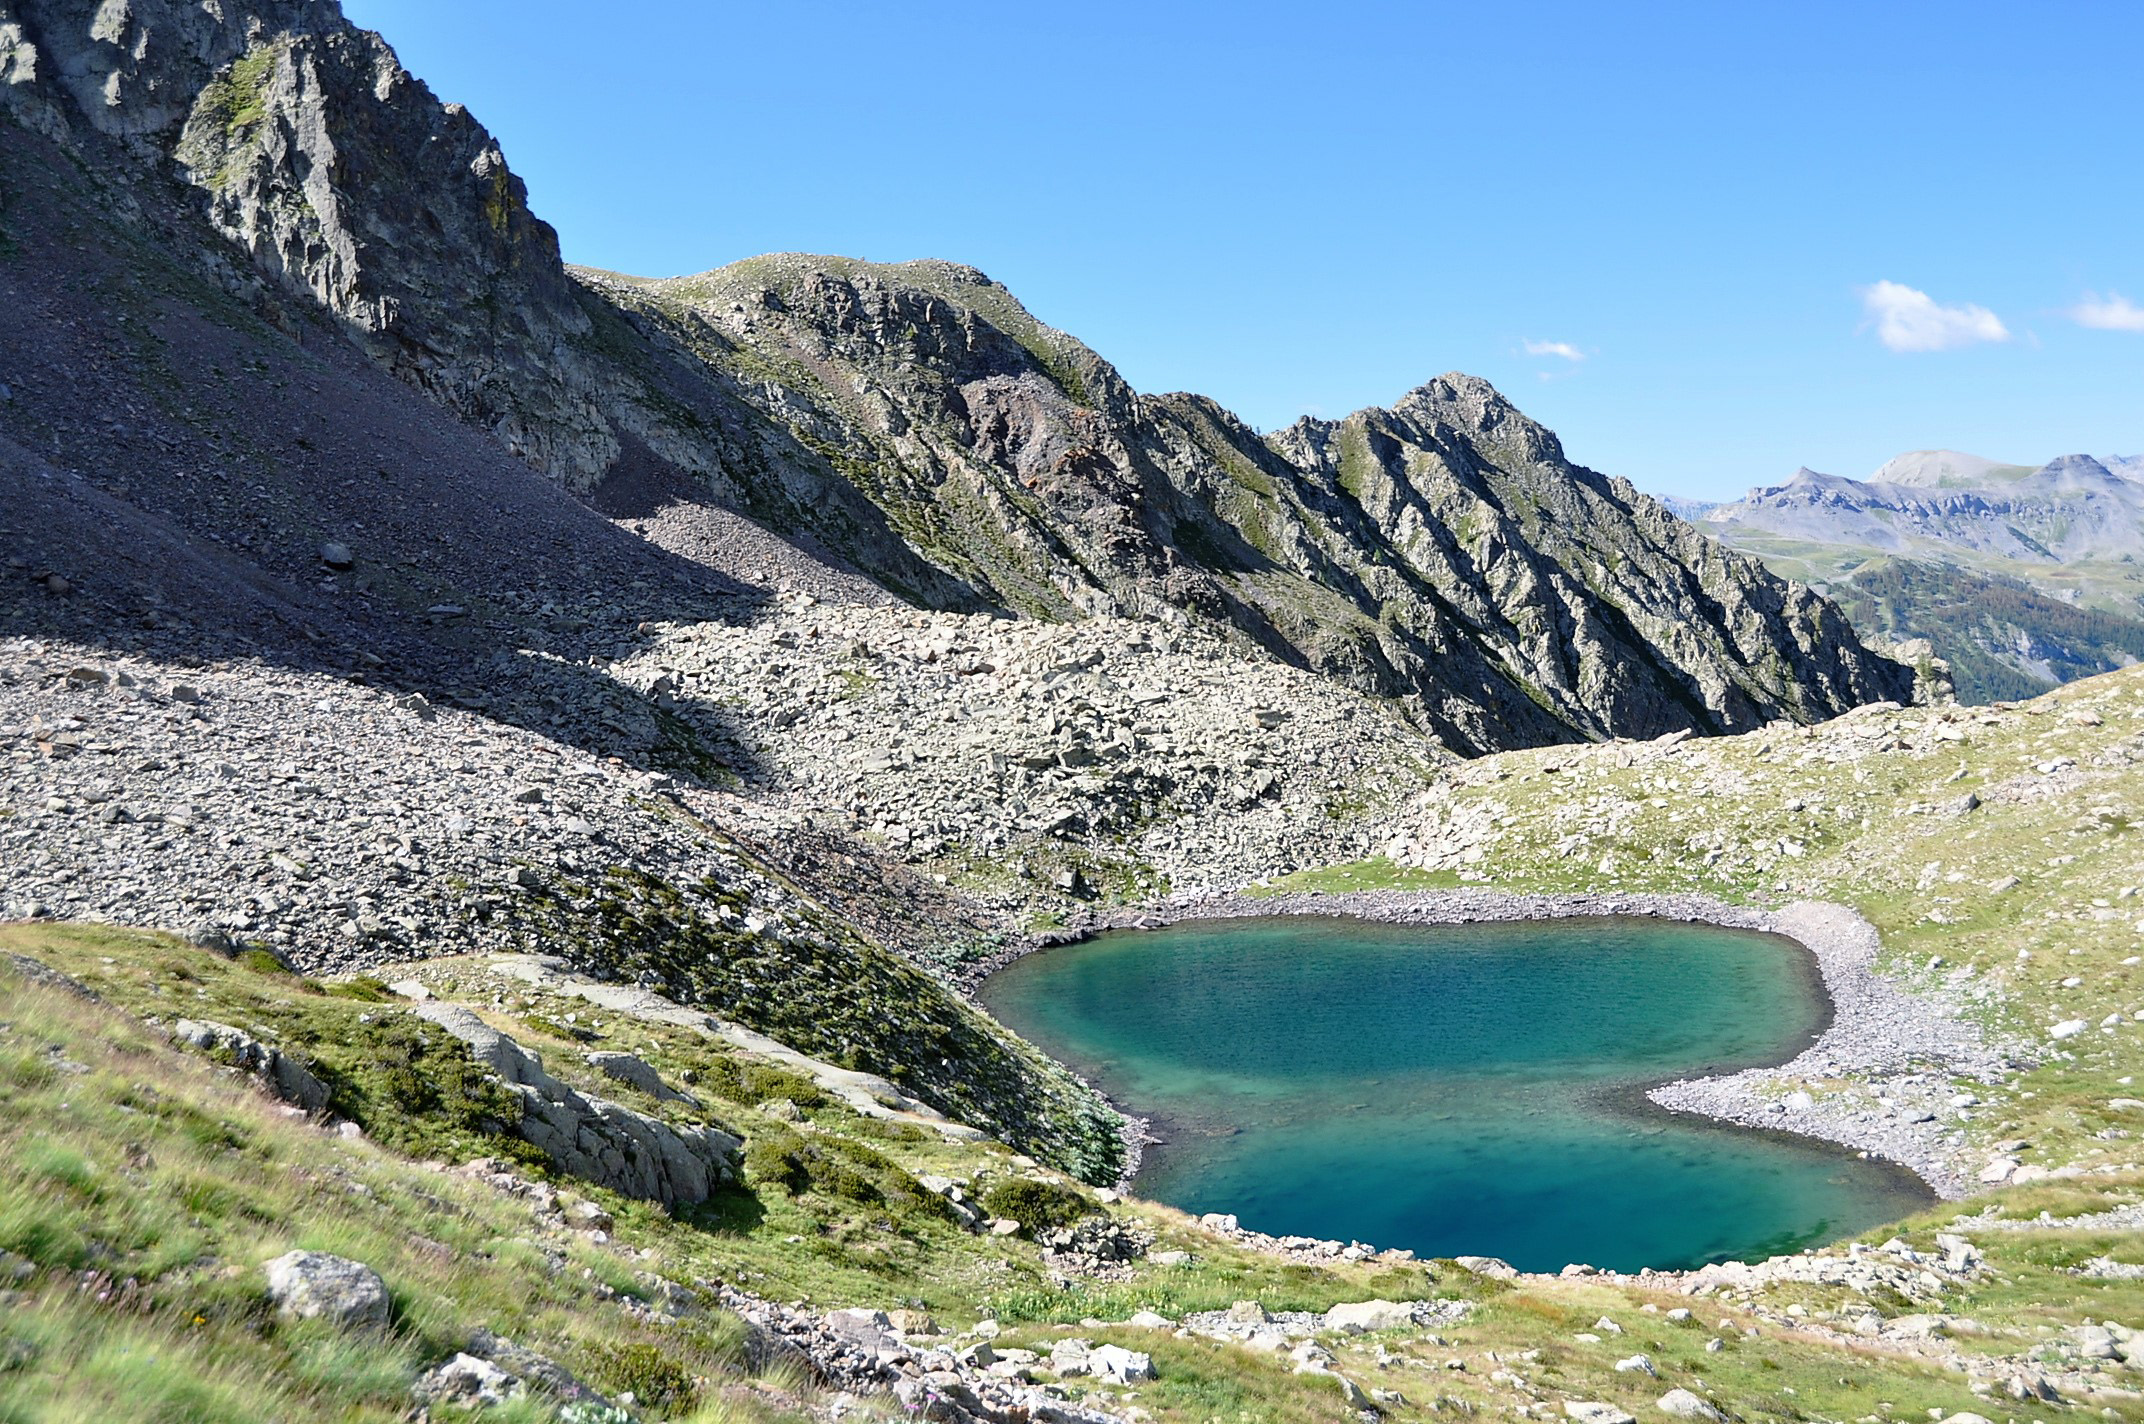 Lac Varicle